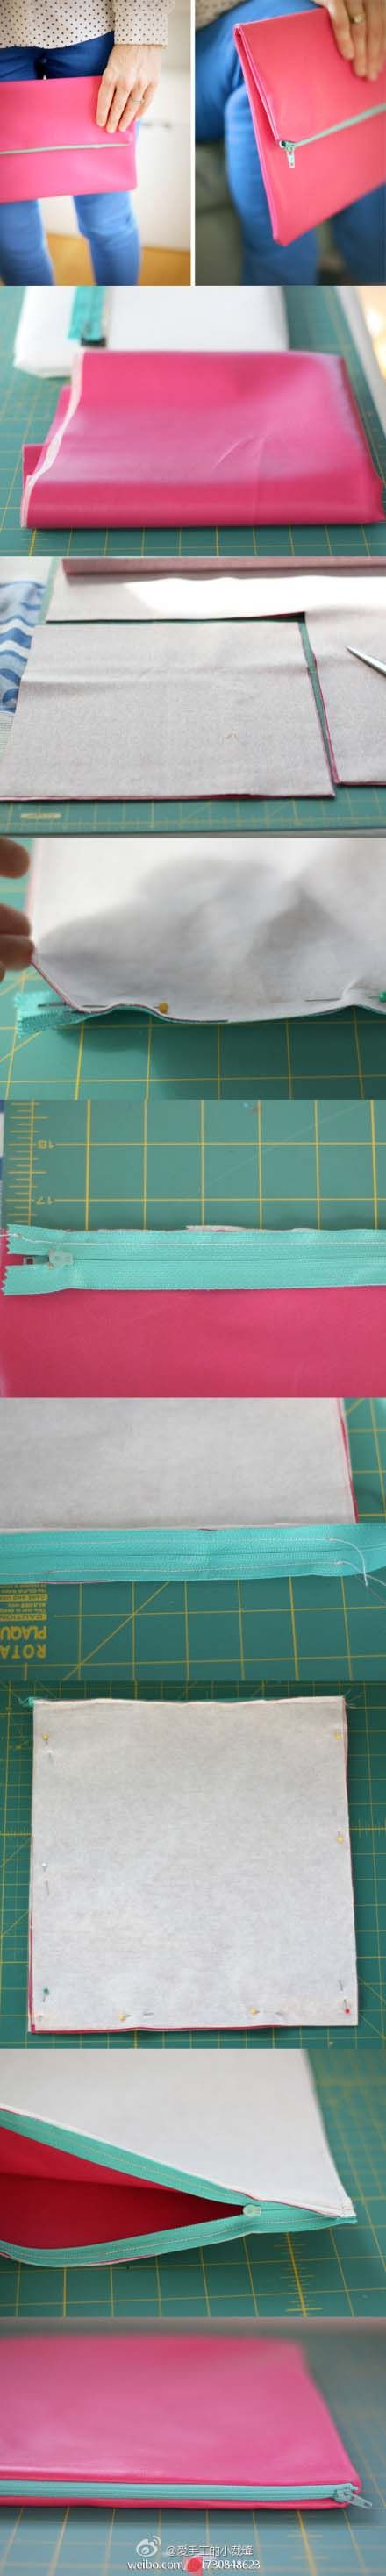 TUTO DIY : comment faire une pochette, simple mais classe !